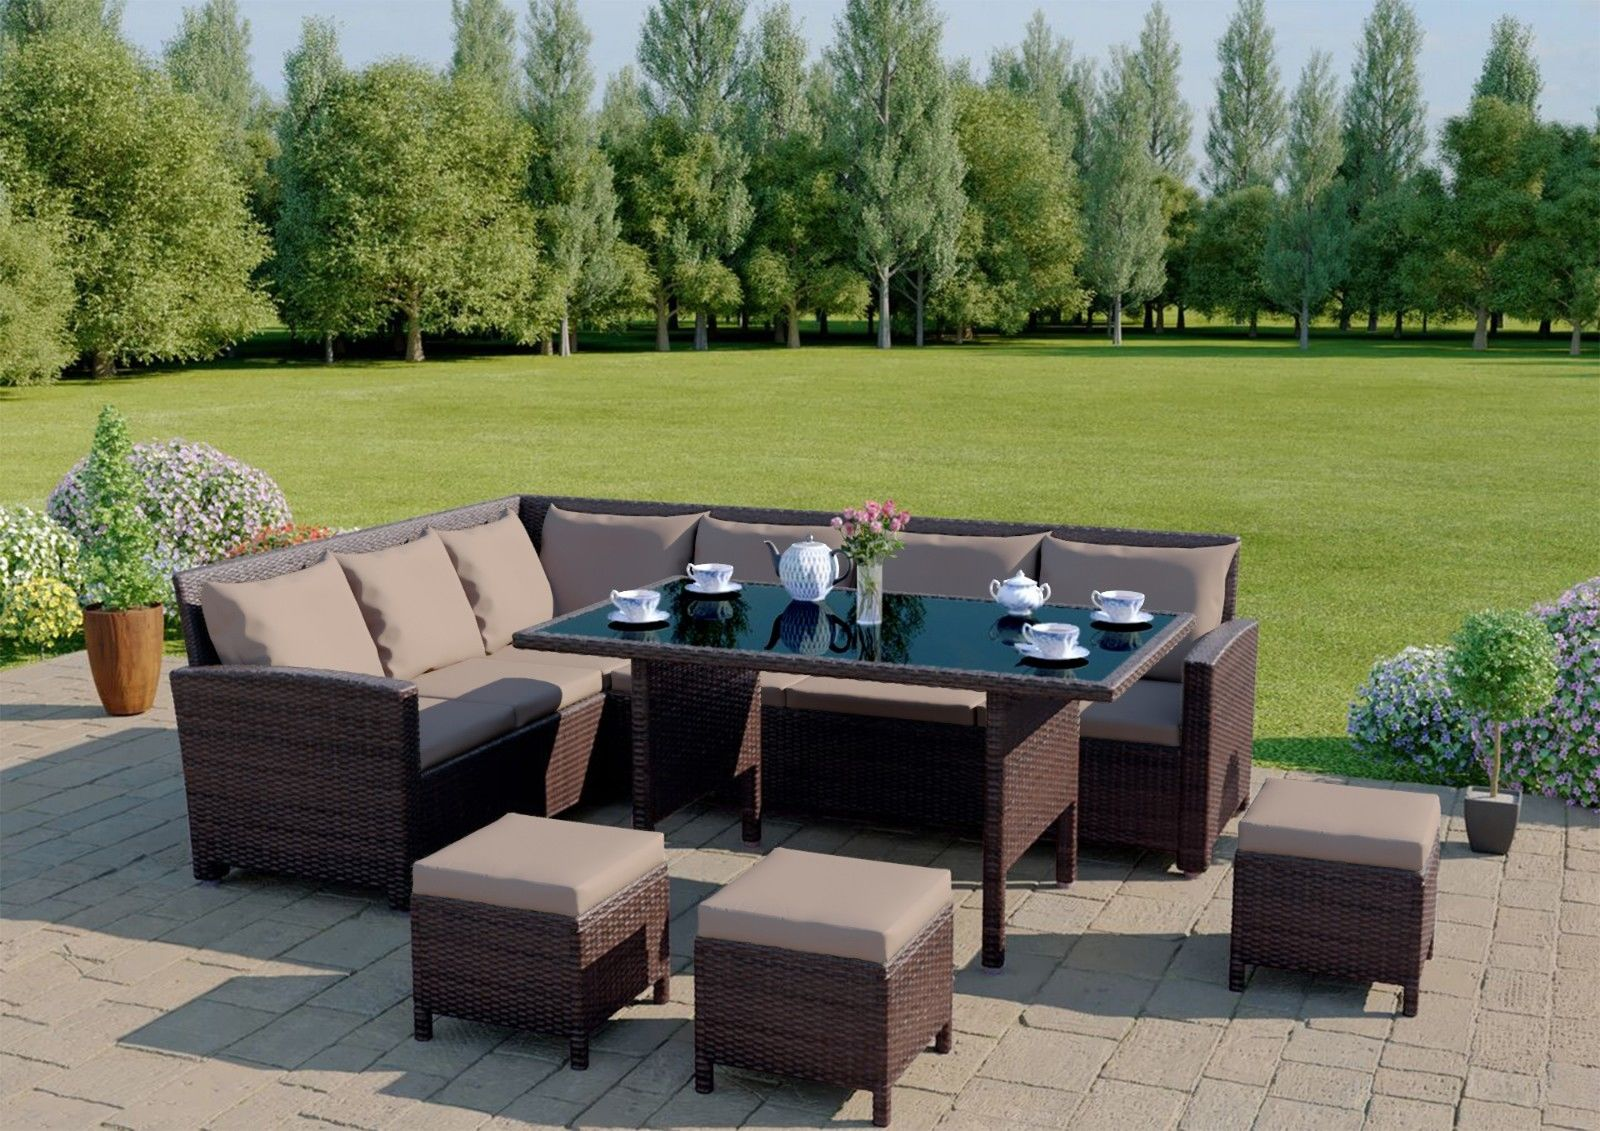 BROWN RATTAN GARDEN FURNITURE 9 SEATER SOFA SET& DINING TABLE BENCH